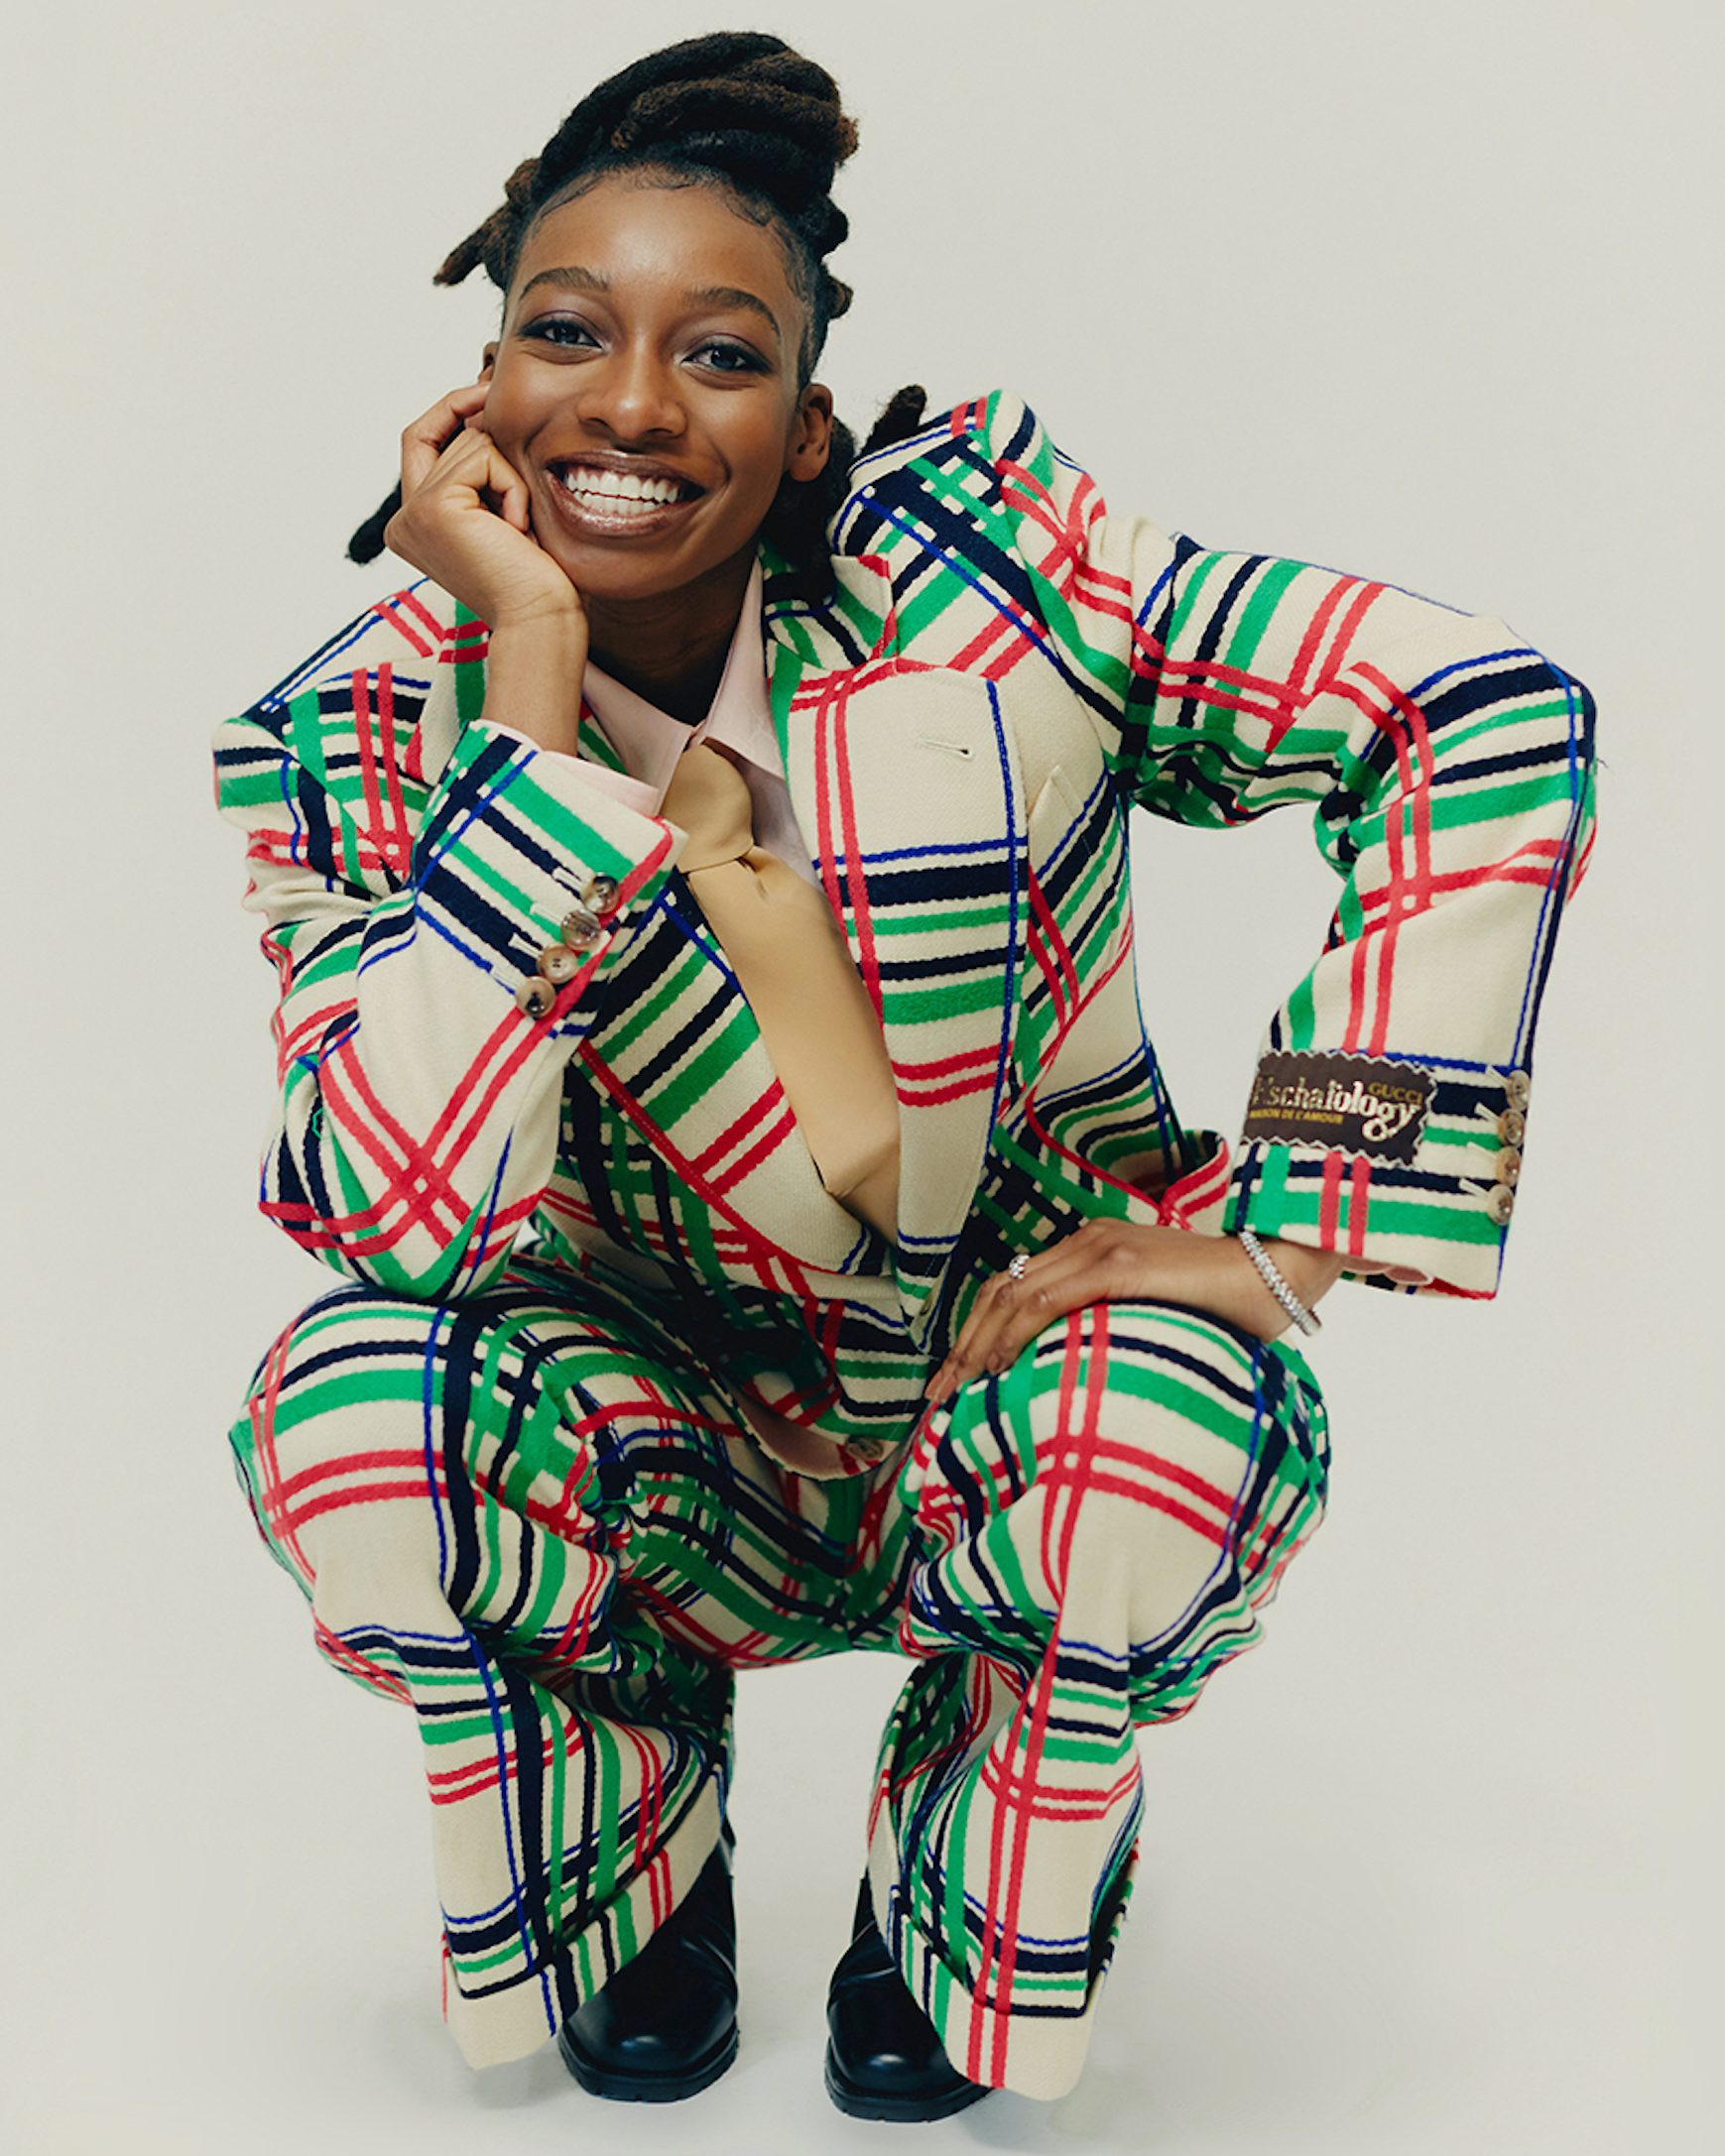 Little Simz is crouching down and smiling at the camera. She is wearing a cream suit with a black, bright red and green check pattern.